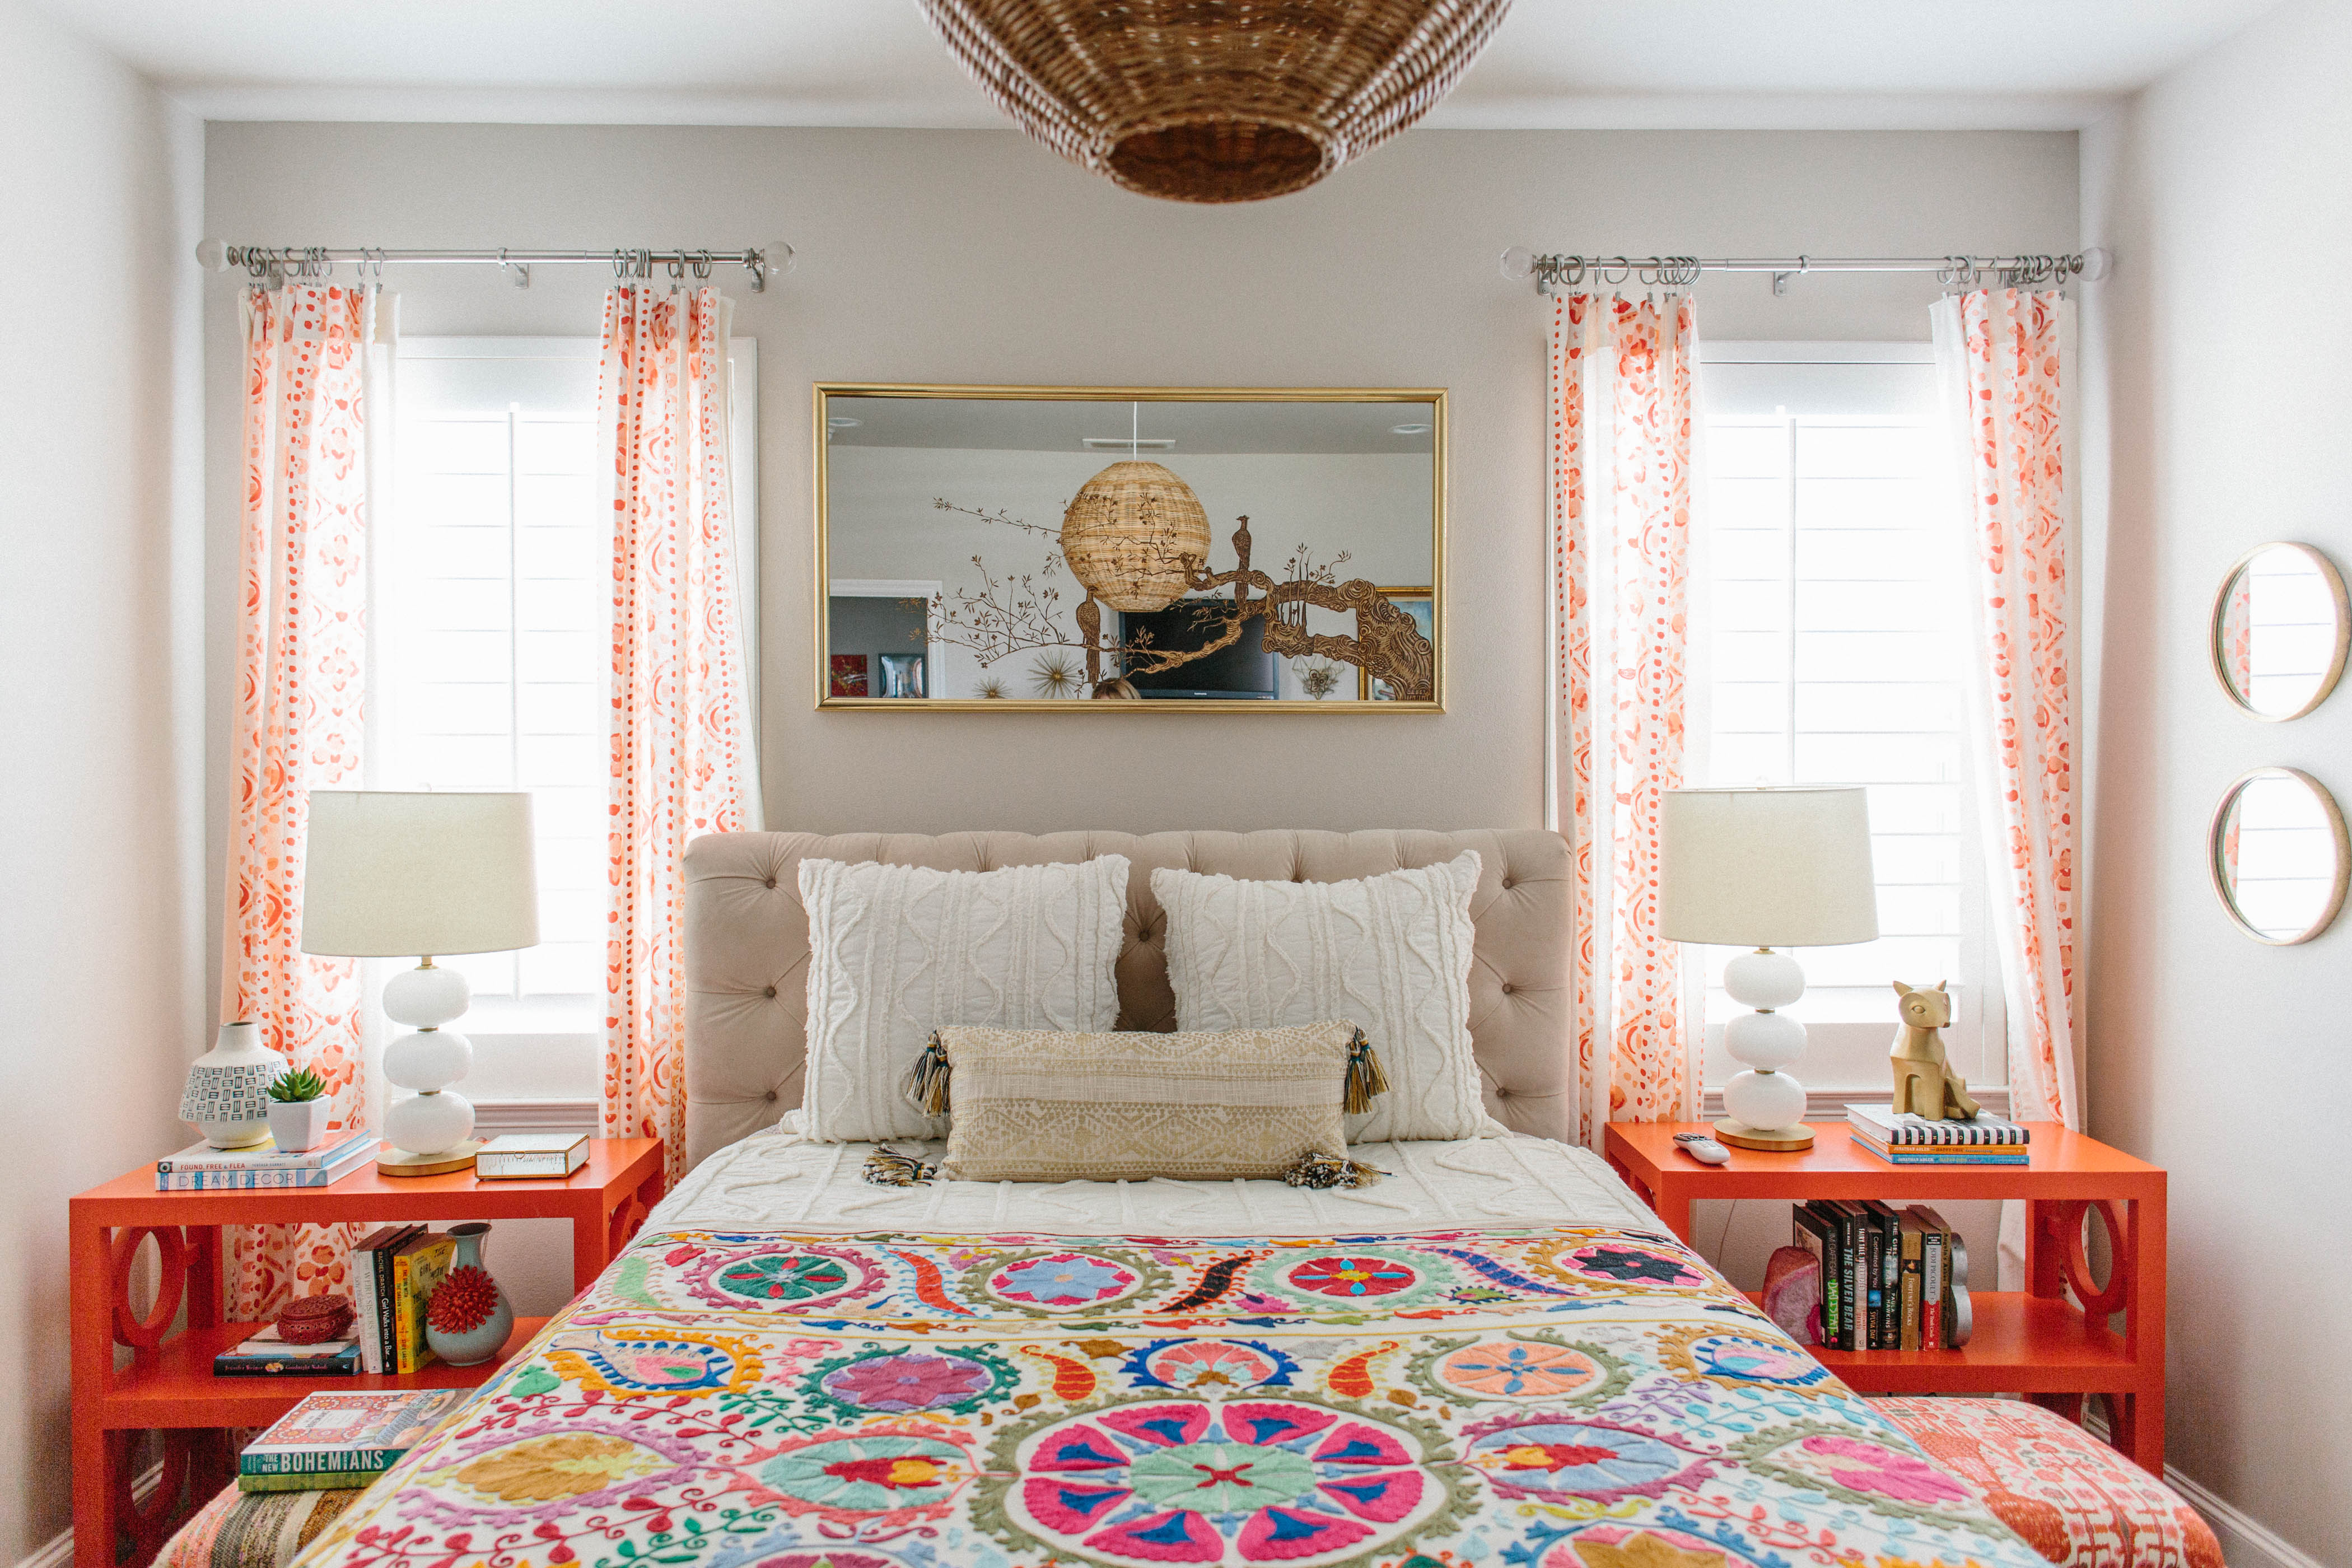 The Best Budget Tricks To Make Your Bedroom Look More Expensive Apartment Therapy